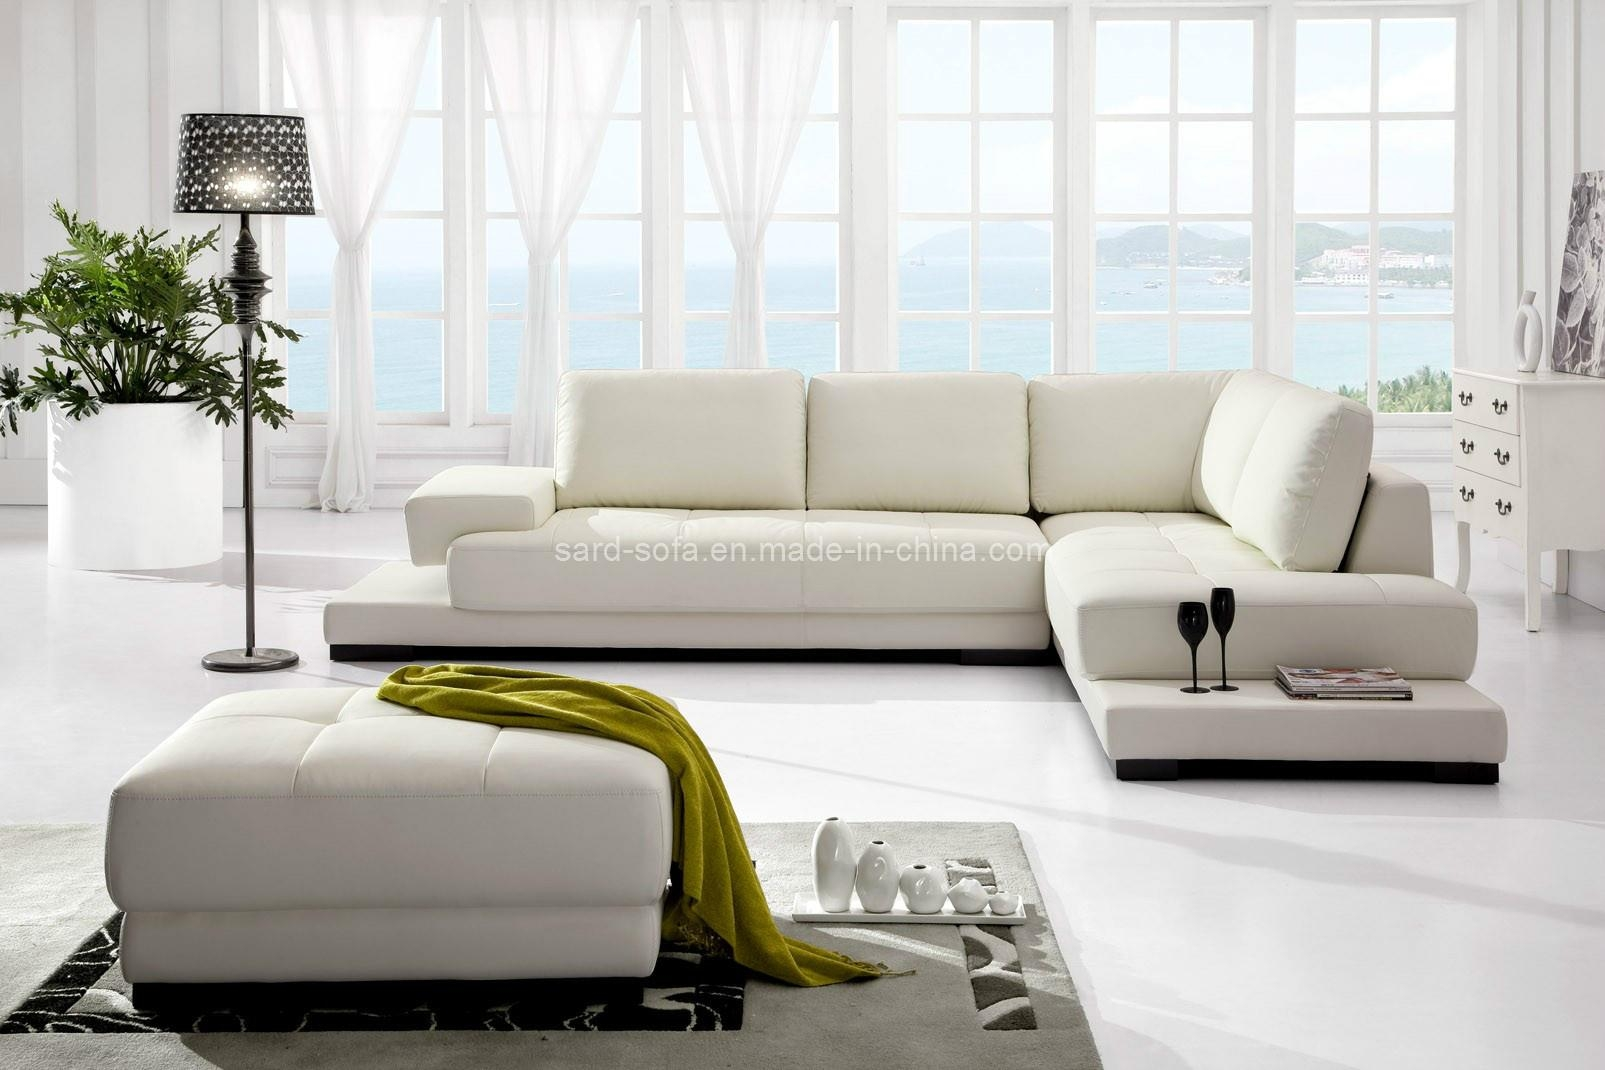 Sofa With Chaise Lounge – Helpformycredit Pertaining To Sofas With Chaise Longue (Image 15 of 20)